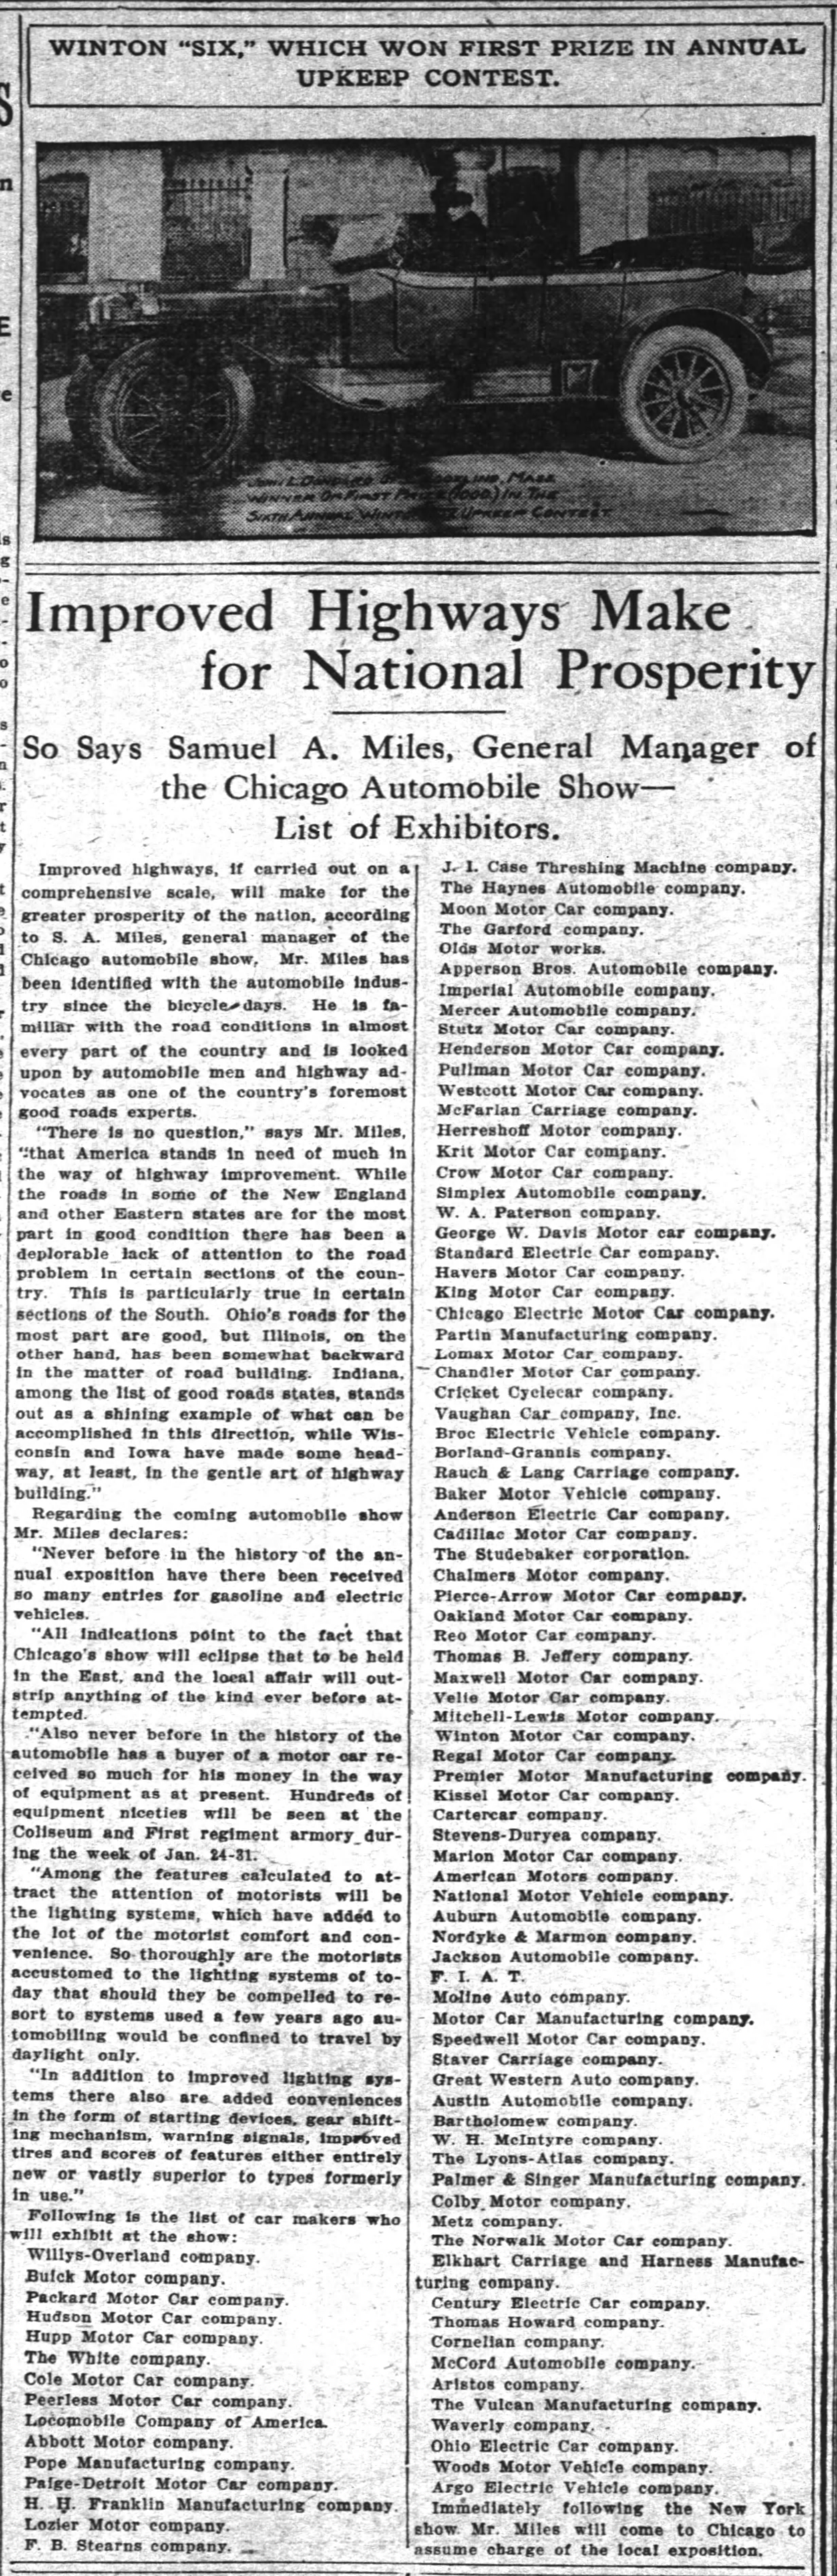 An article from The Inter Ocean (a Chicago, IL newspaper, dated December 28 1913) displaying the list of exhibitors for the 1913 Chicago Auto Show. Exhibitors include the Norwalk Motor Car Company.